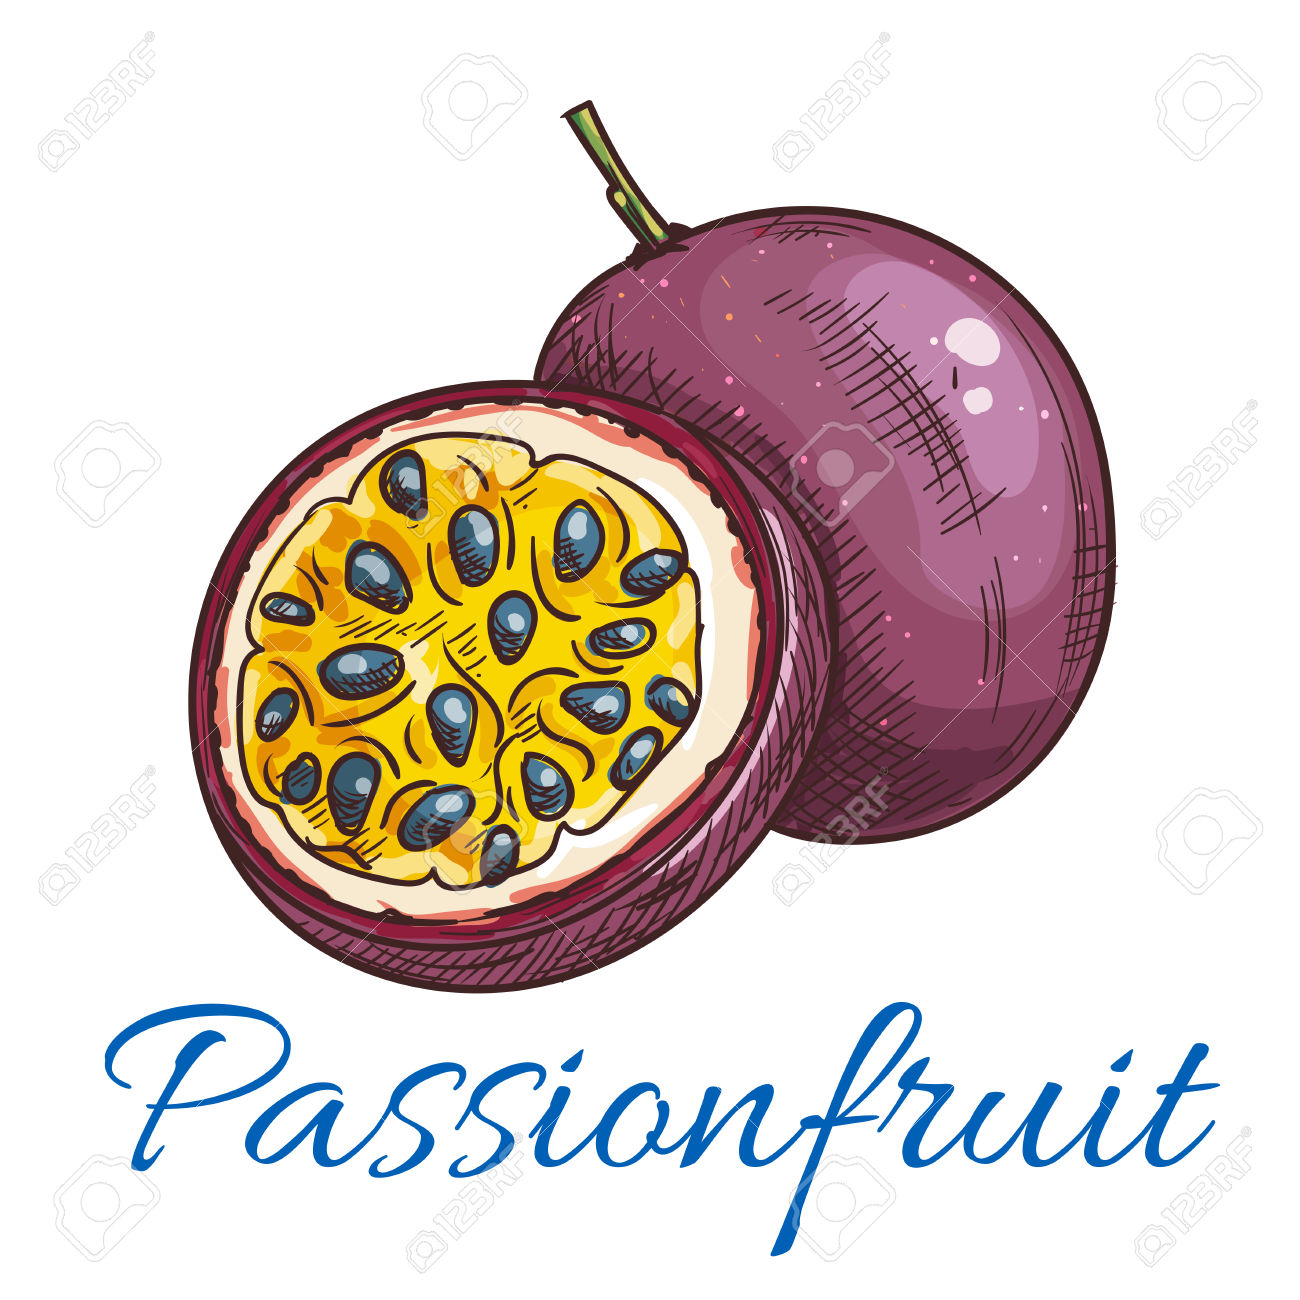 375 Passionfruit Cliparts, Stock Vector And Royalty Free.